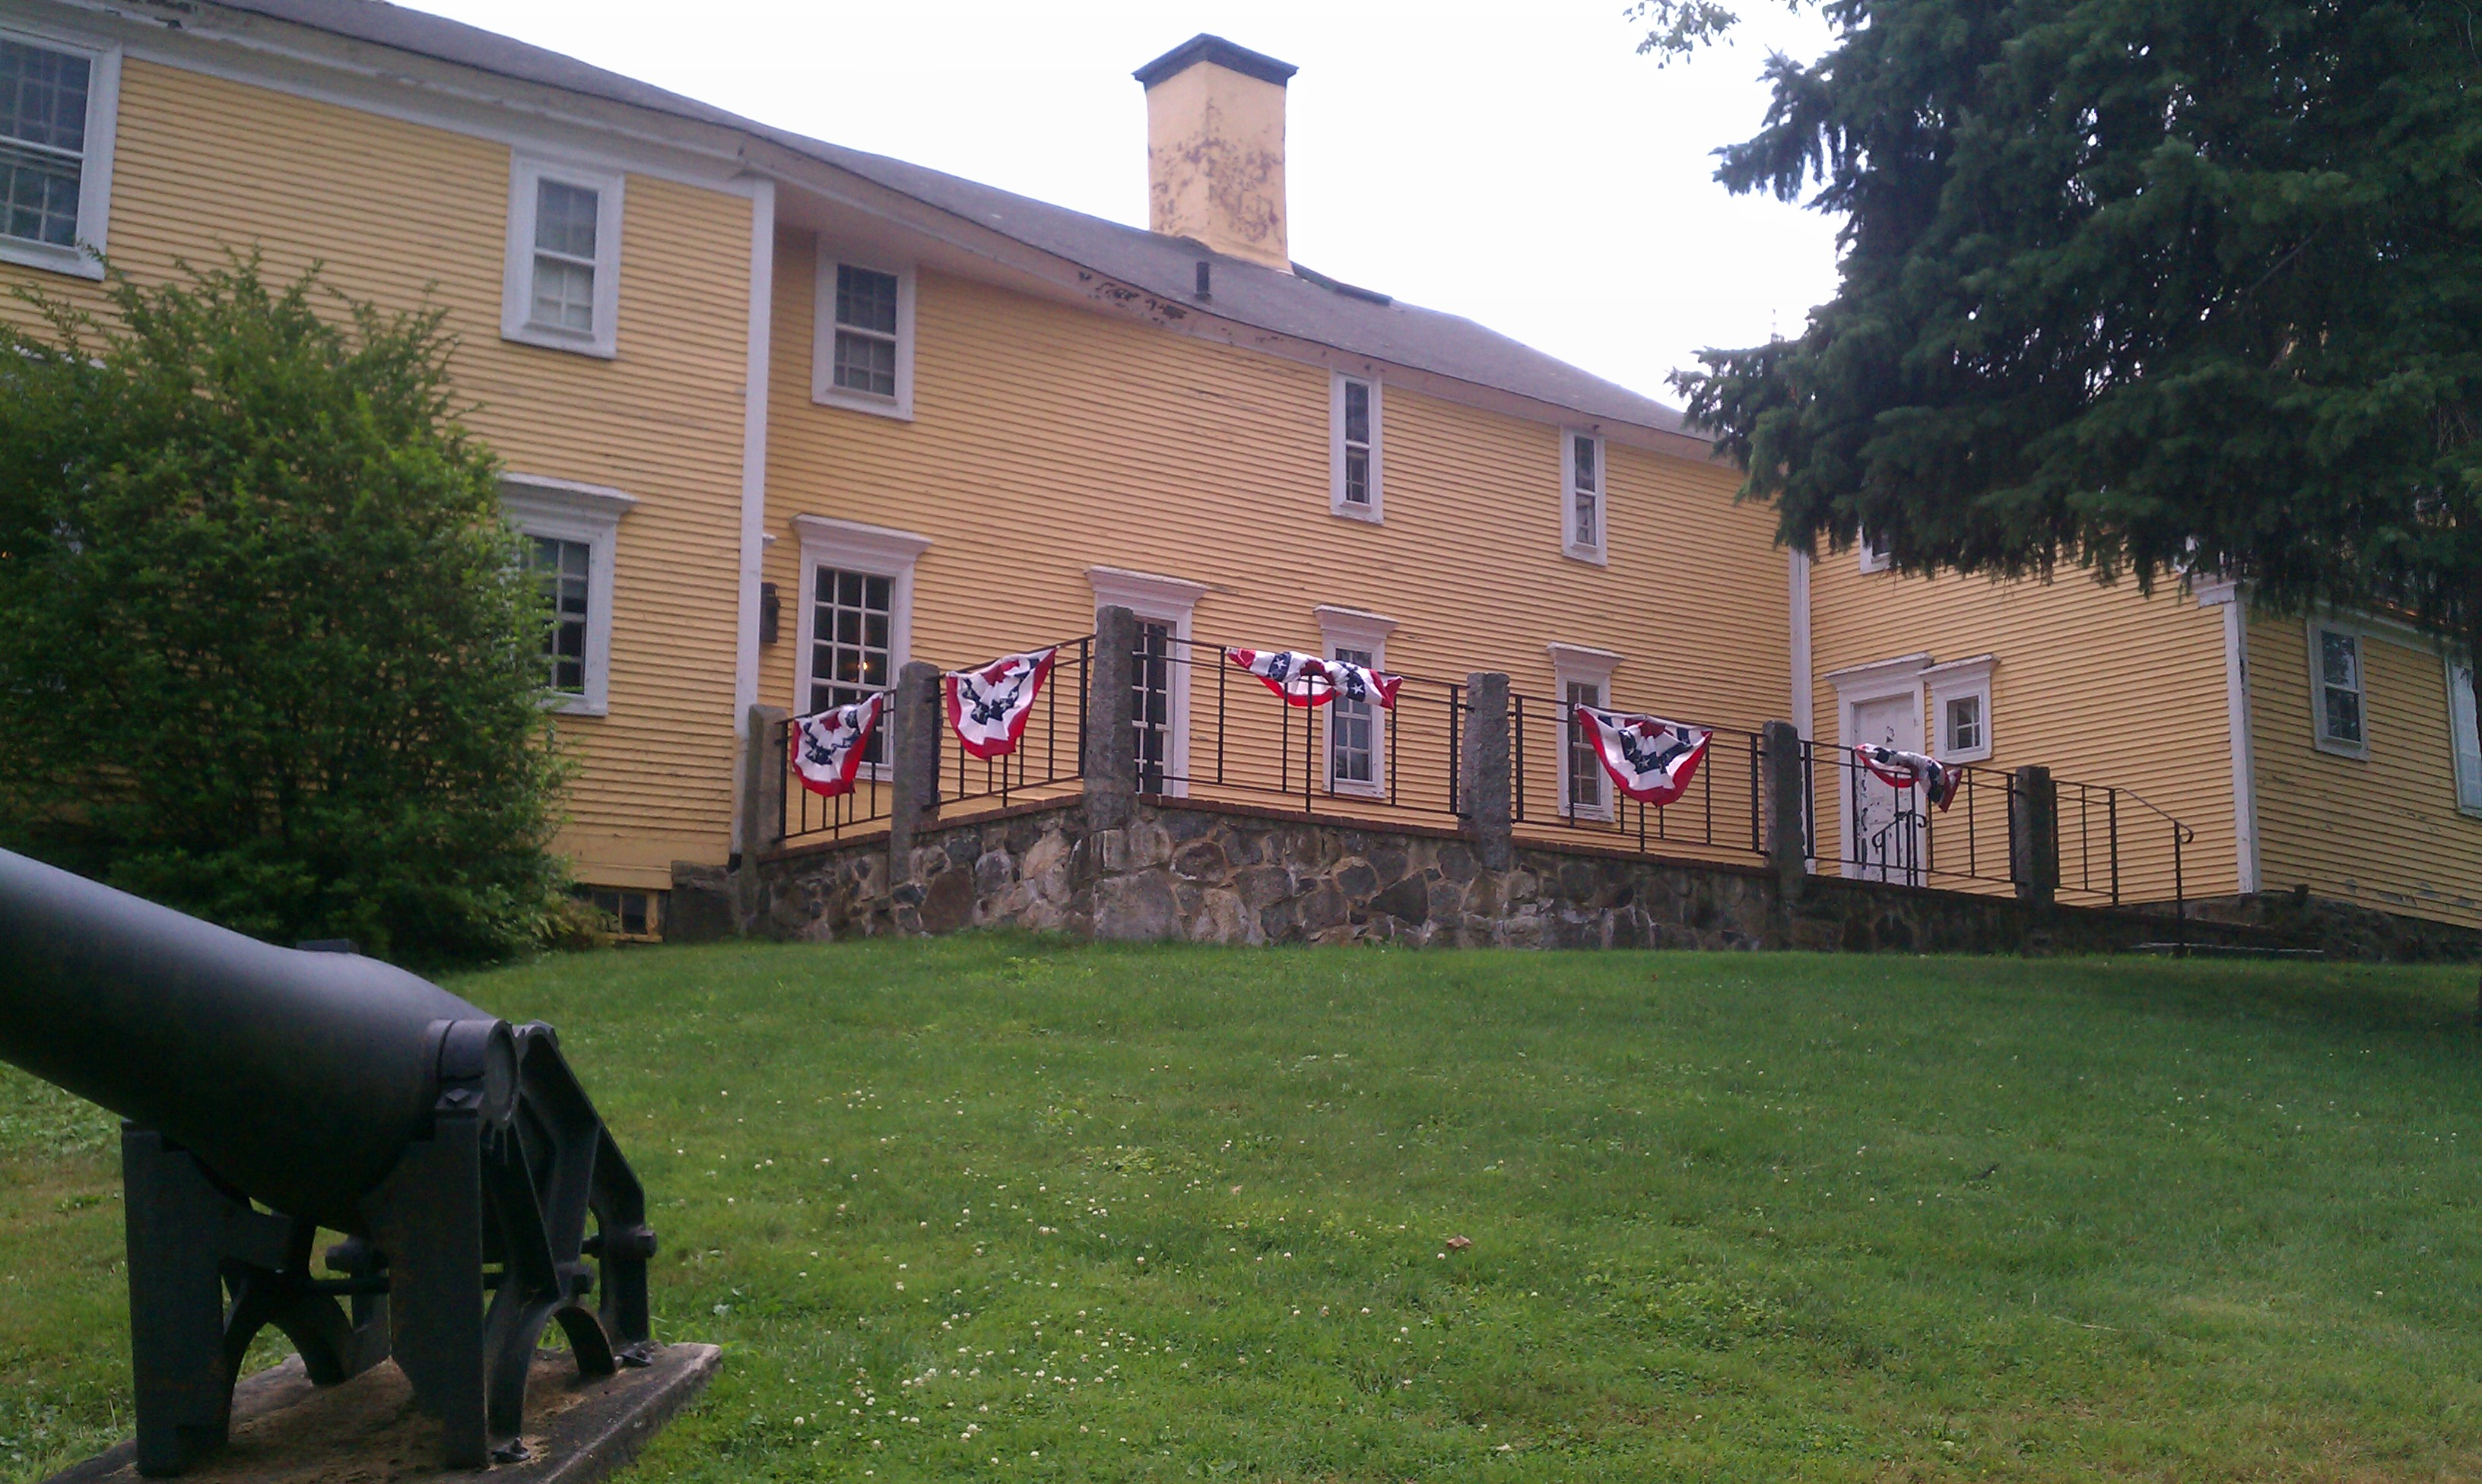 The museum is located in the home where a rare copy of the Declaration of Independence was discovered.